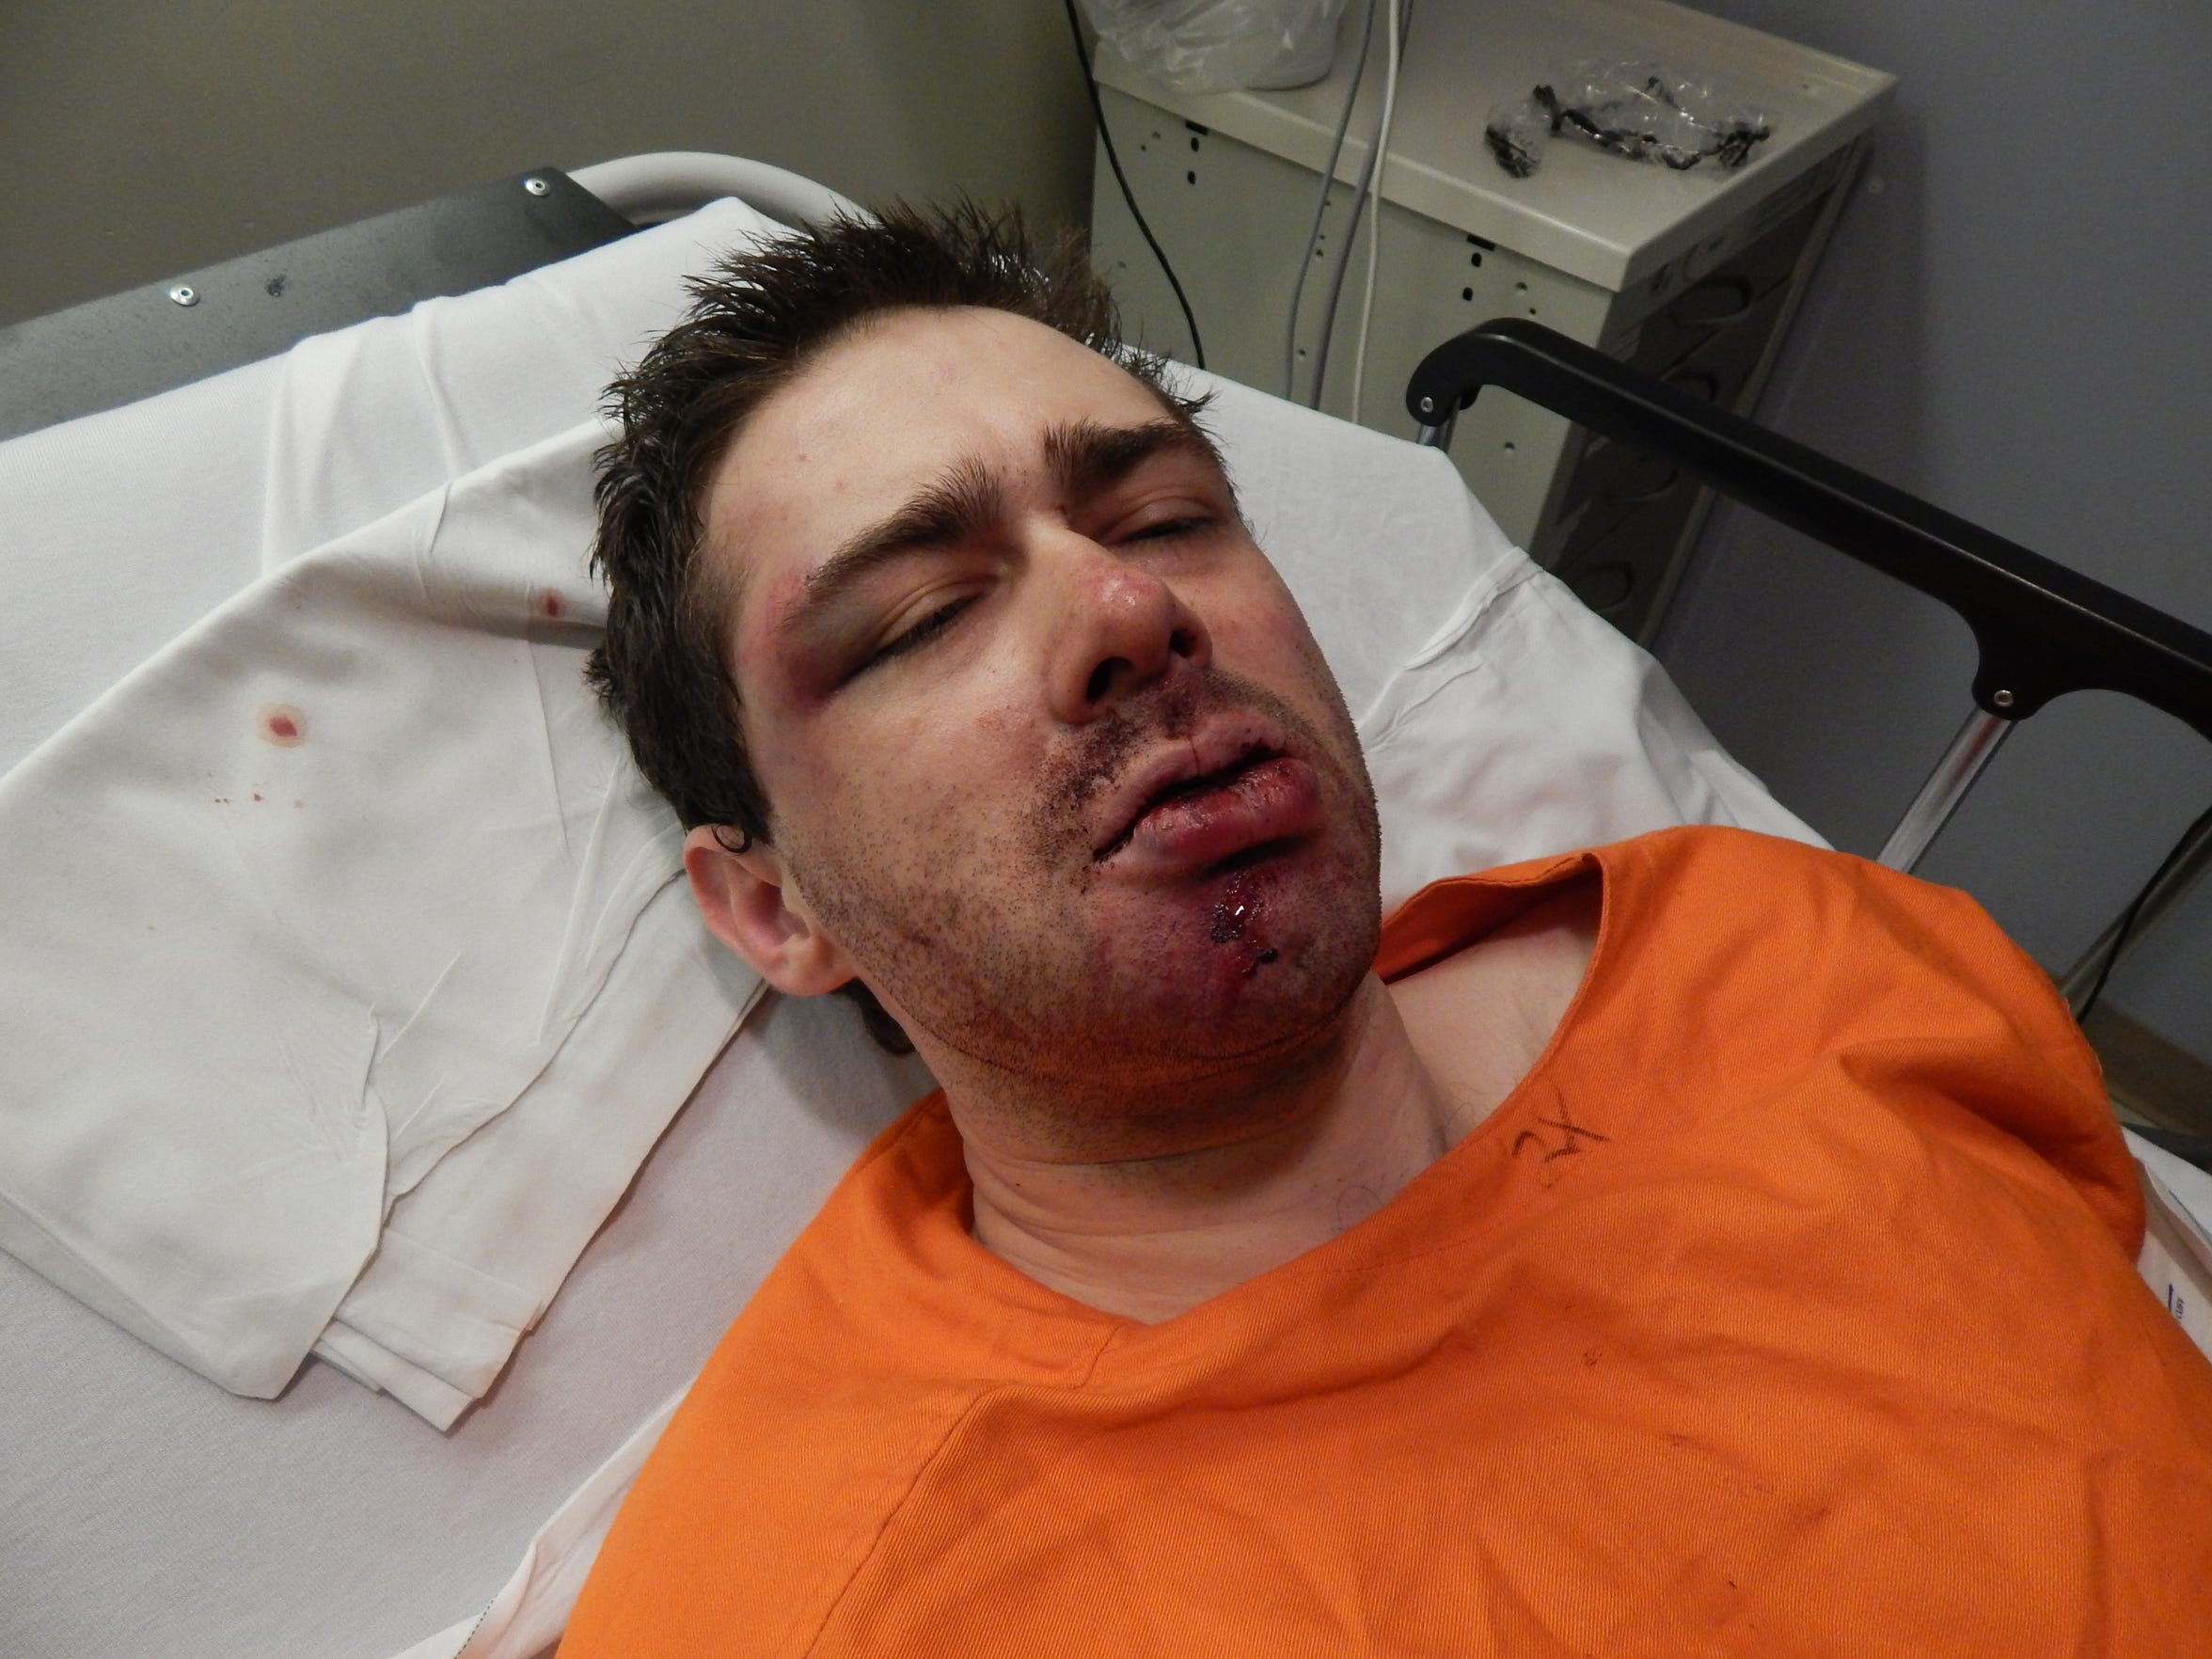 Casey Pigge was treated at Adena Pike Medical Center after he and fellow inmate Greg Reinke stabbed a correctional officer more than 30 times on Feb. 20, 2018, at Southern Ohio Correctional Facility.